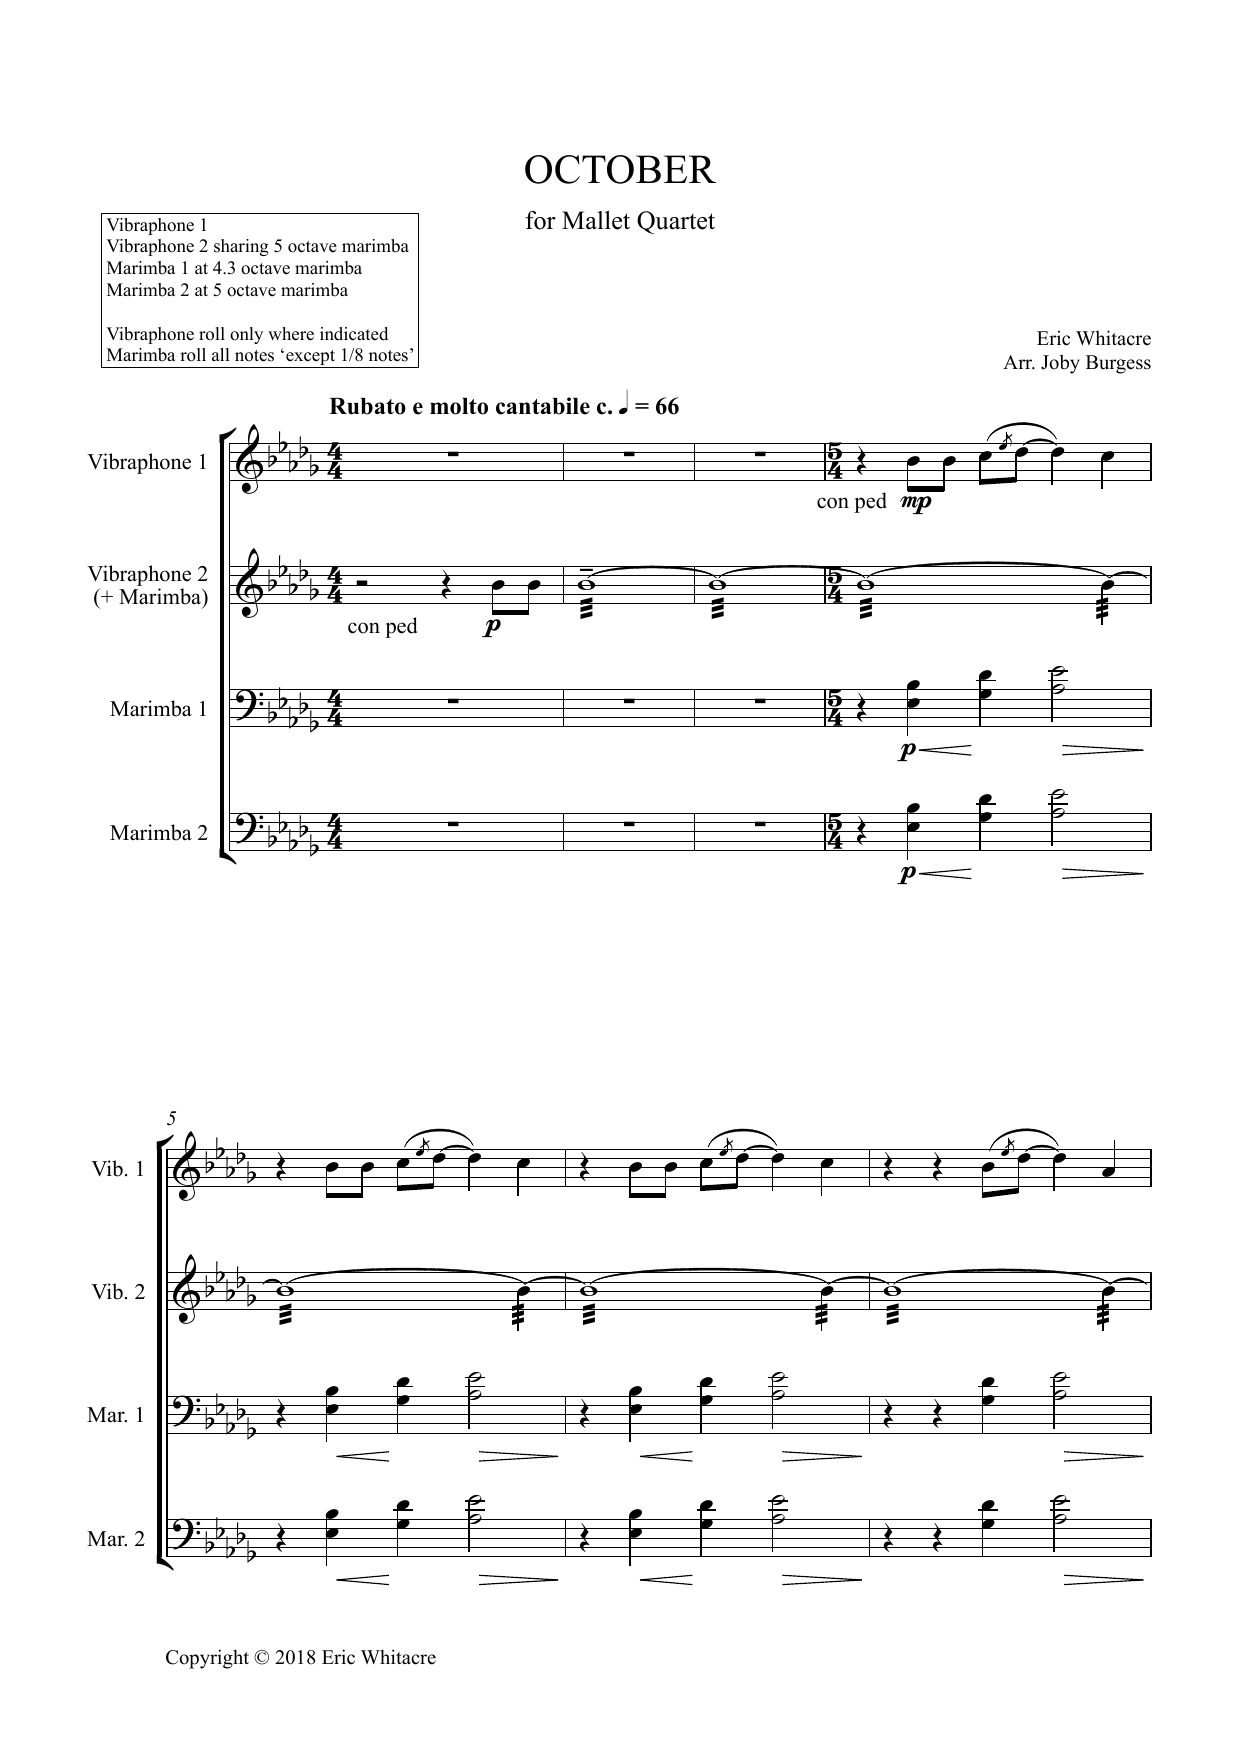 Eric Whitacre October (Alleluia) for Mallet Quartet (arr. Joby Burgess) - Full Score sheet music preview music notes and score for Percussion Ensemble including 11 page(s)